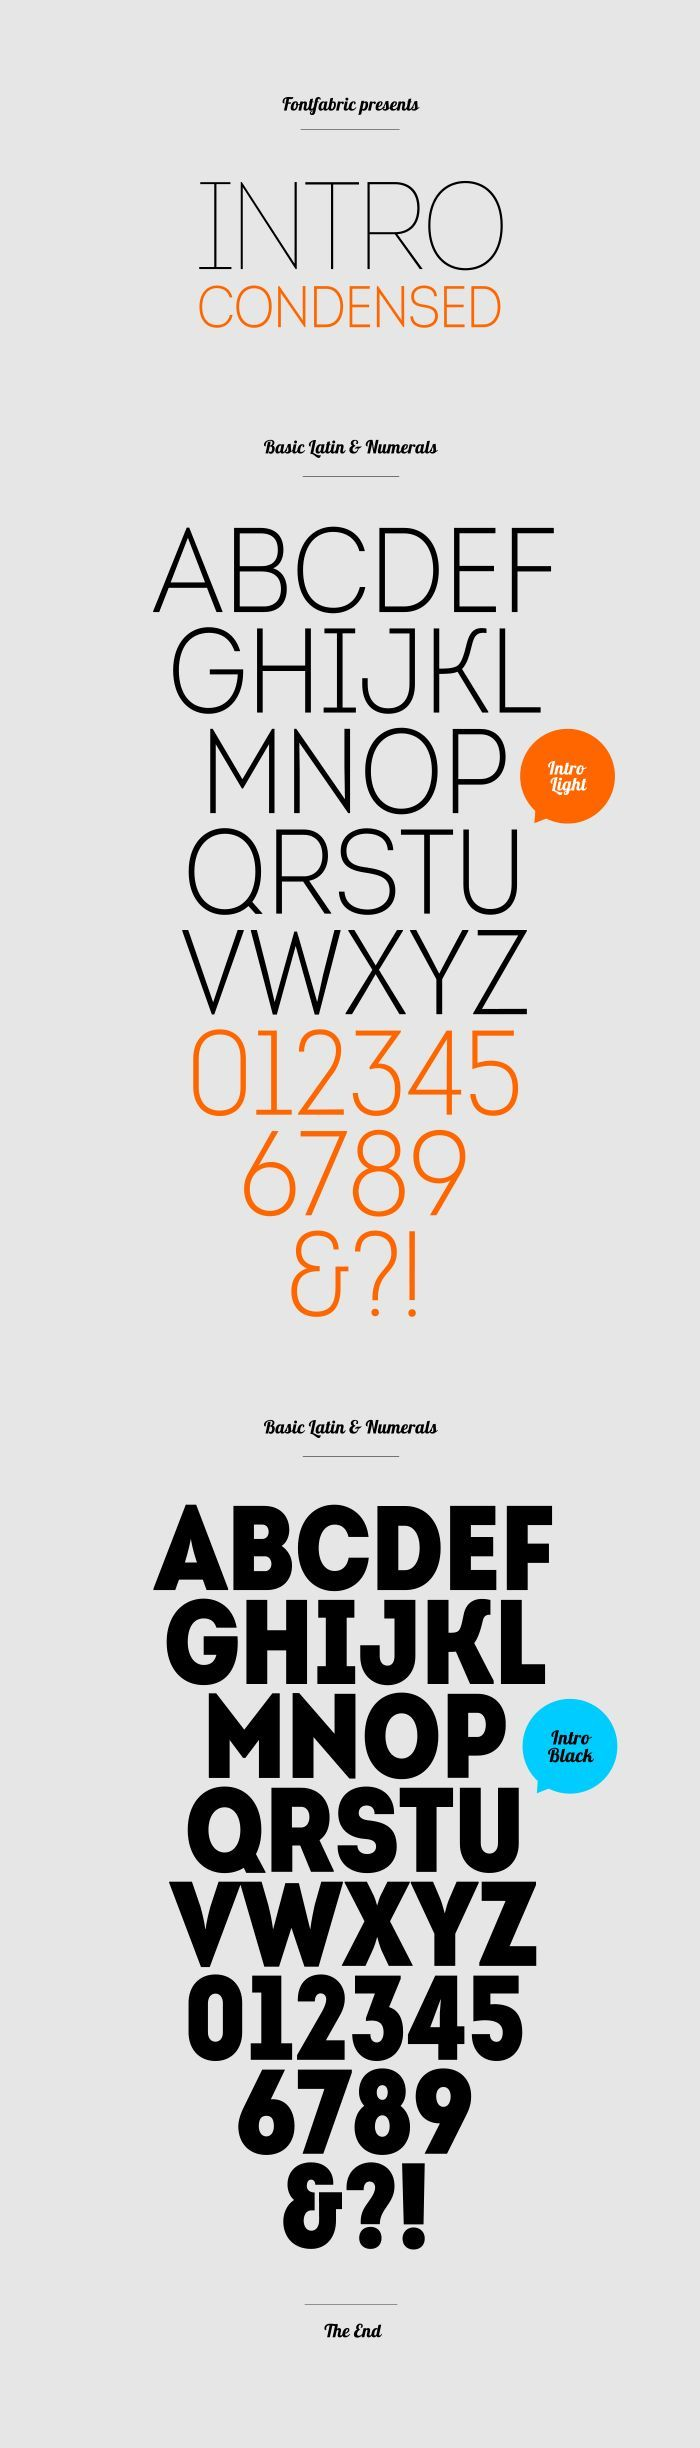 best font size for web applications